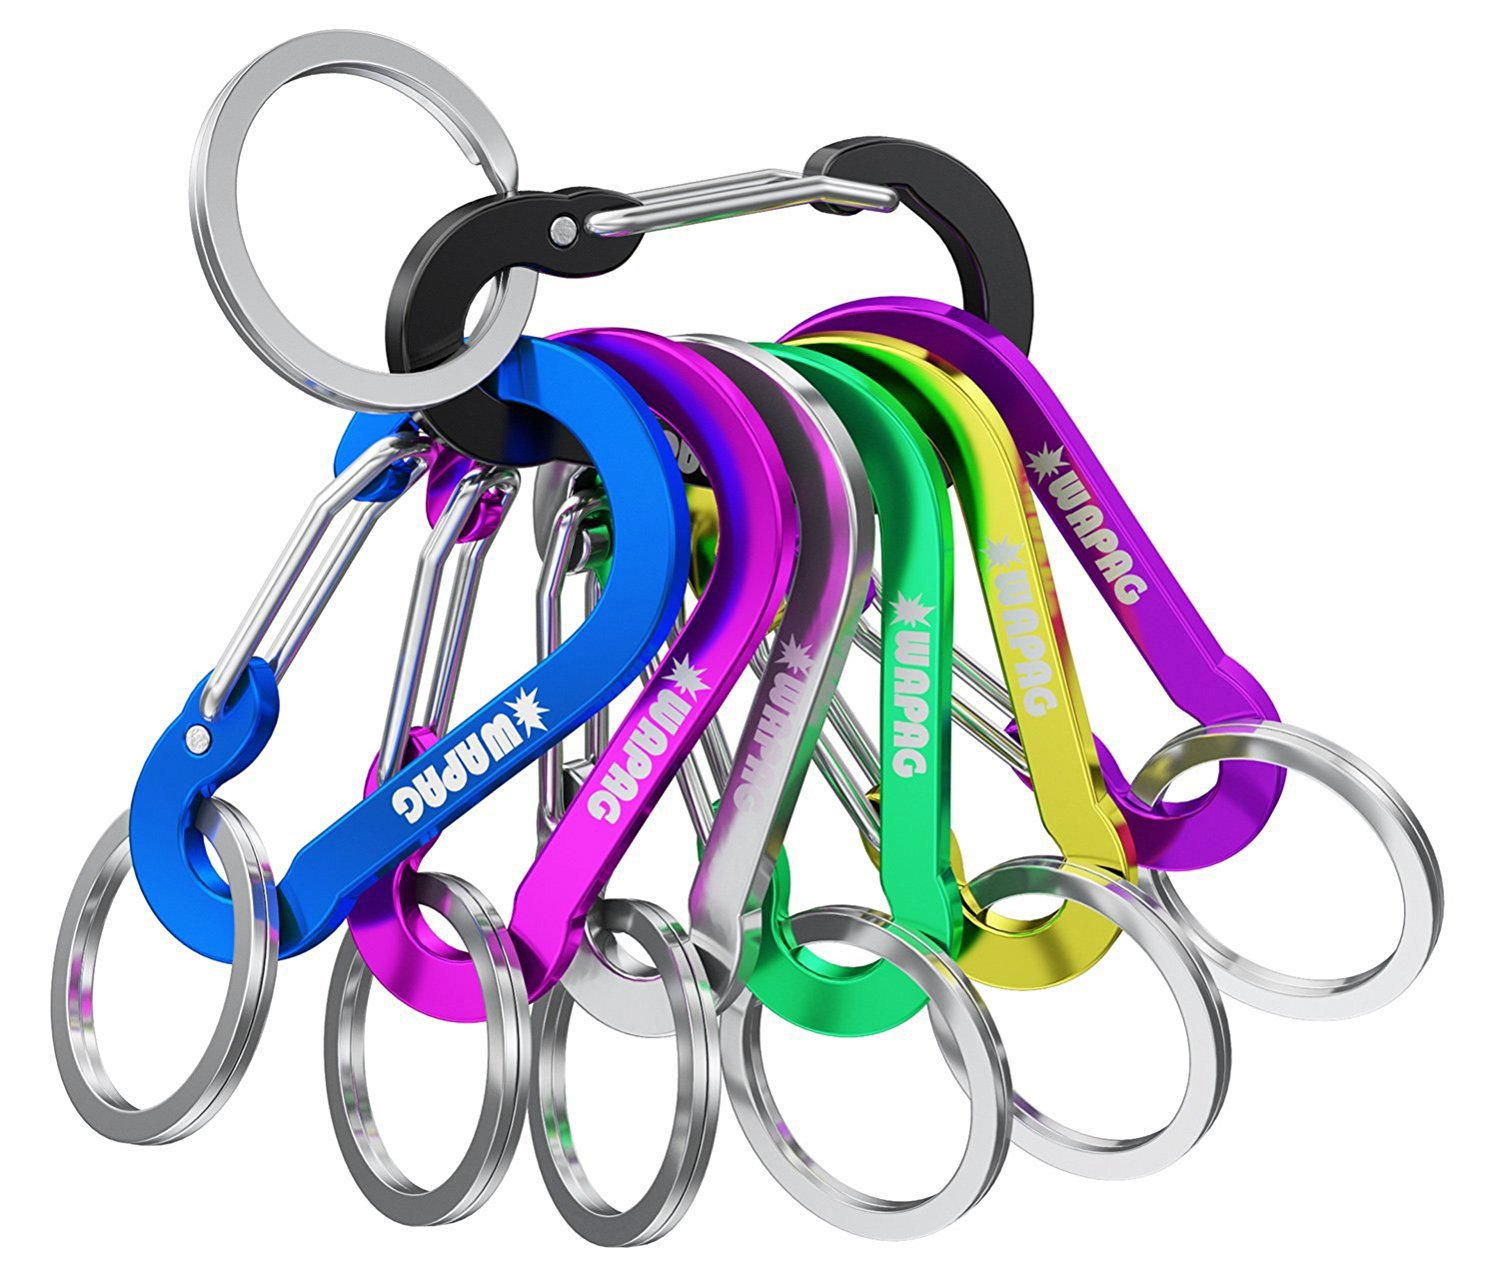 2Inch Small Caribeaner Keyrings Mini Spring Hooks for Small Items Keys Home Camping Hiking Traveling Fishing WAPAG Carabiner Clip Keychain Aluminum Strong Lightweight 5CM